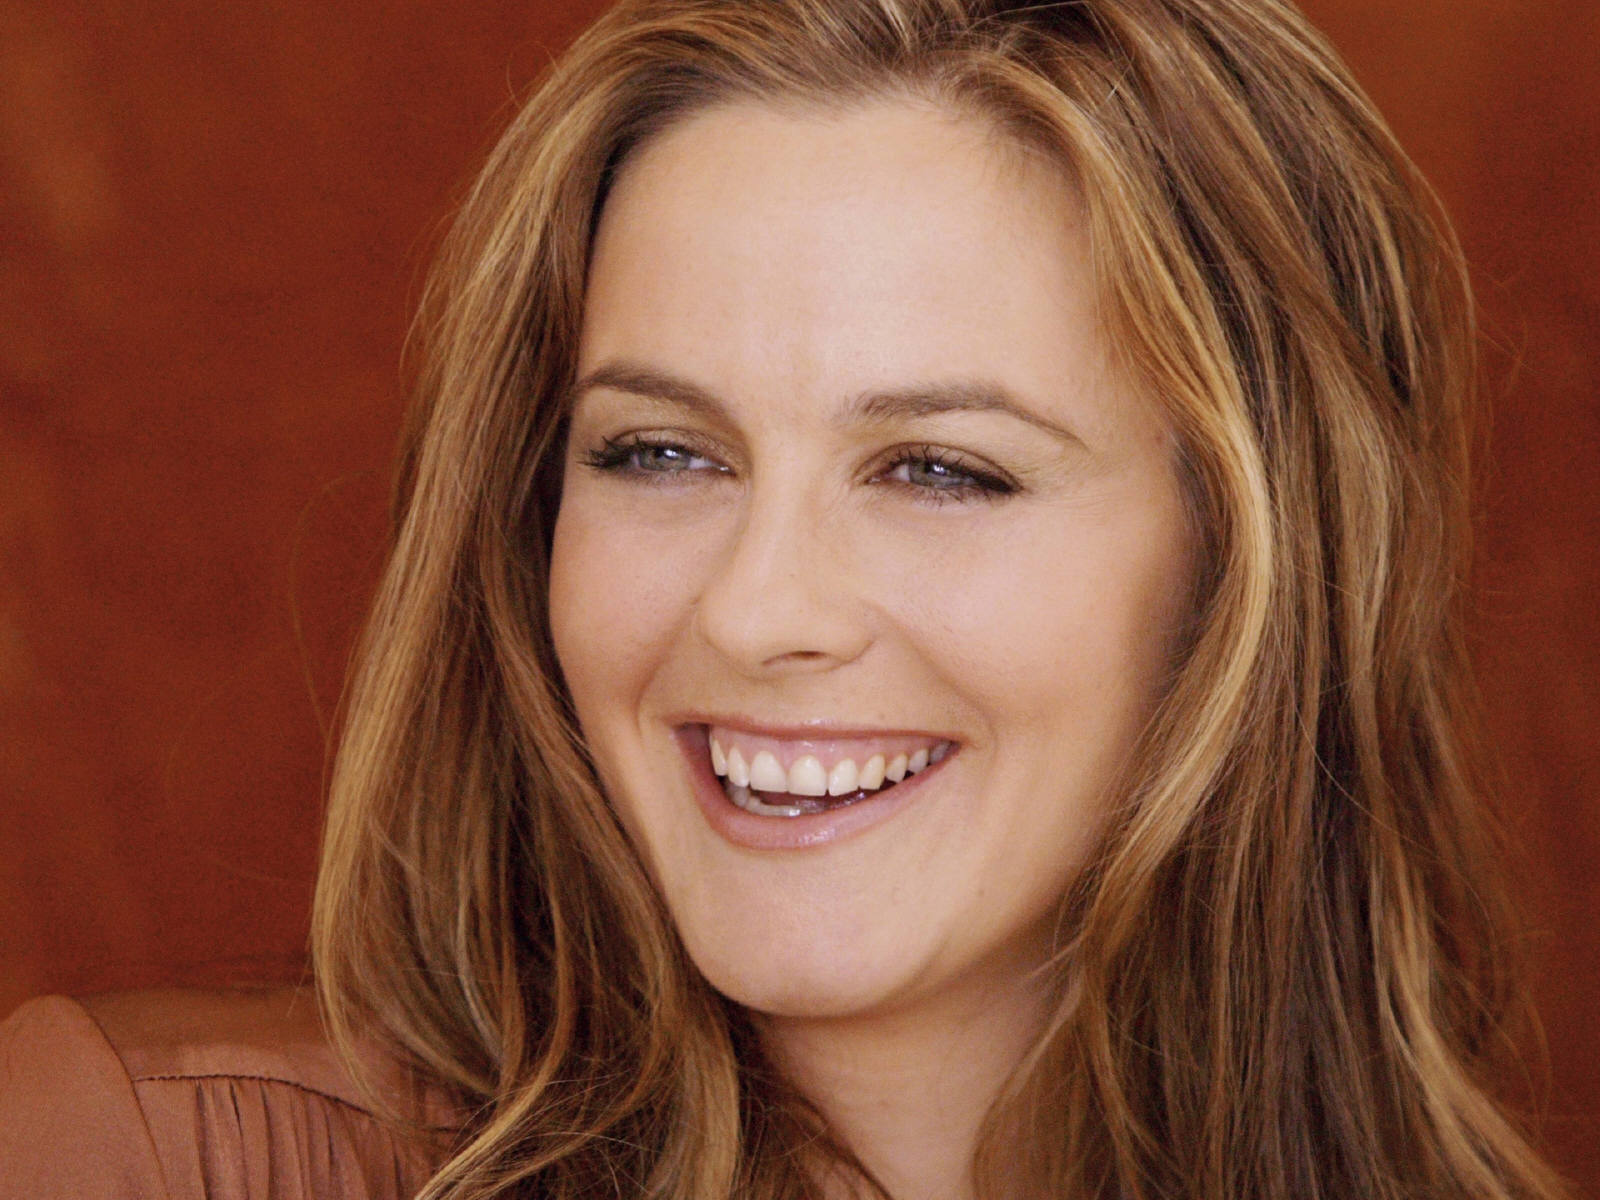 Alicia Silverstone Hairstyles Pictures, Long Hairstyle 2011, Hairstyle 2011, New Long Hairstyle 2011, Celebrity Long Hairstyles 2046